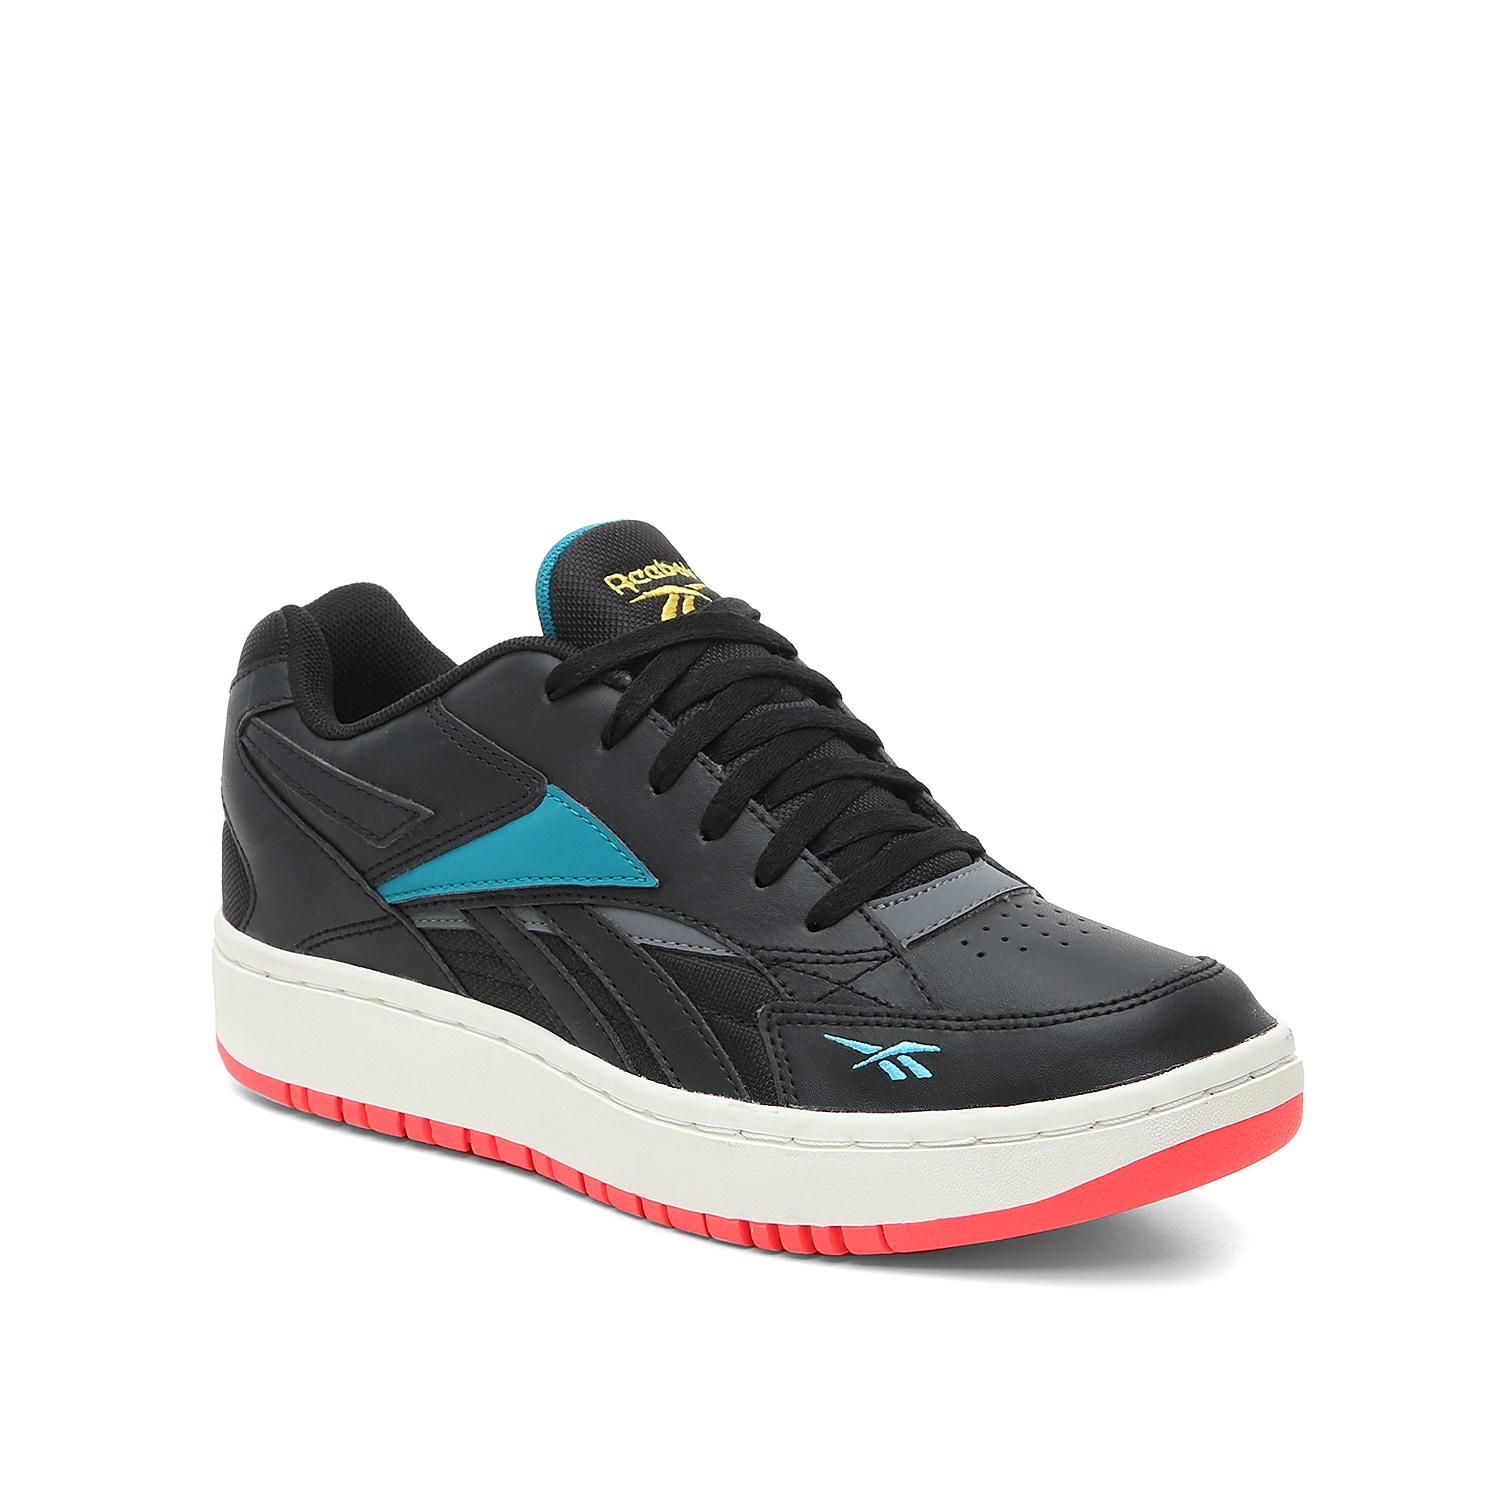 Freshen up your sporty look with the women\\\'s Court sneaker from adidas. This pair provides a snug fit for lasting comfort that gets you through each day.